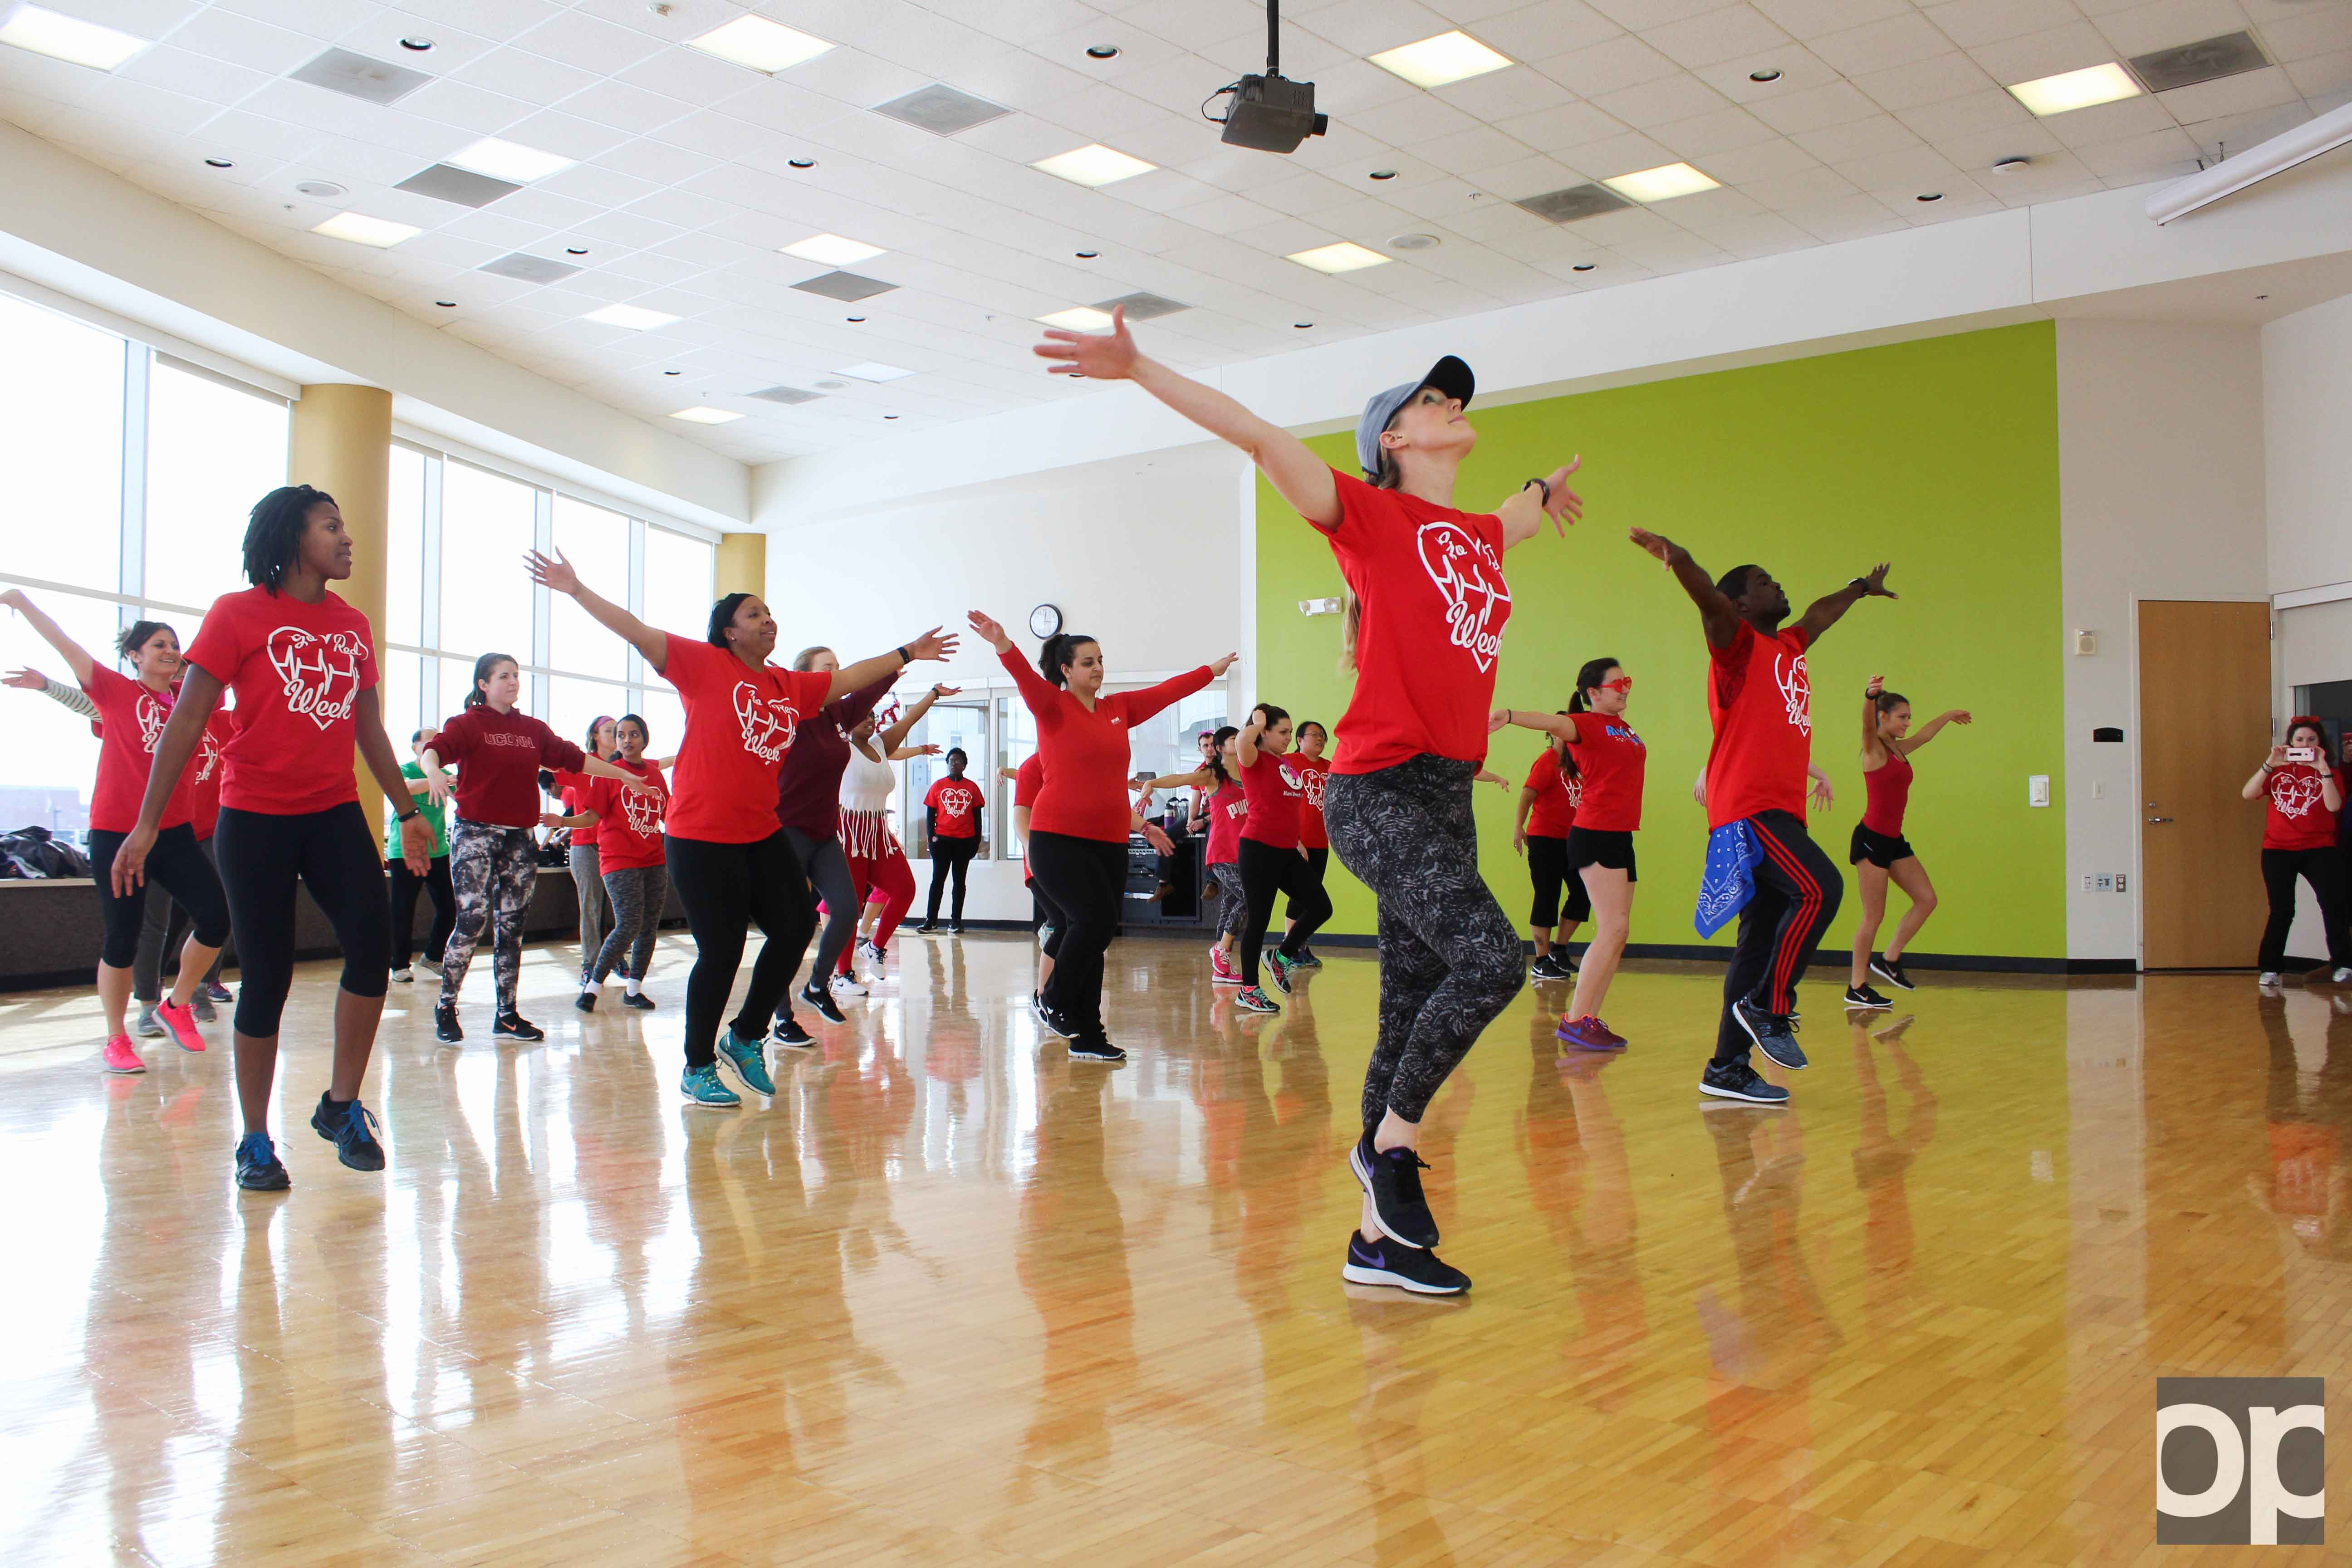 The OU Rec Well Center hosted a Red Dance Jam, in honor of Go Red Week, giving faculty and students an opportunity to be active and encourage heart health.